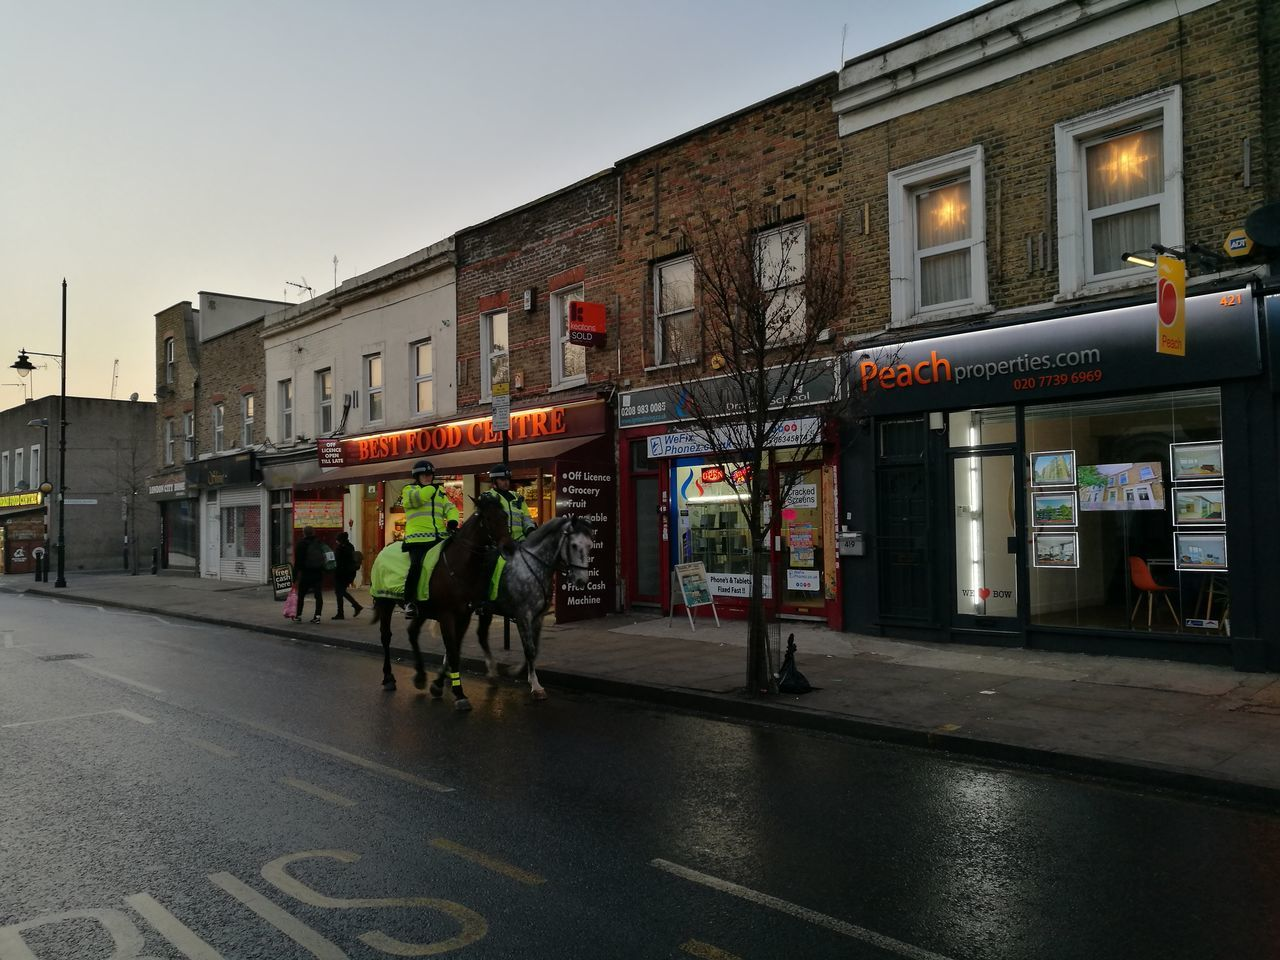 London Horse Police Neiborhood Evening Winter